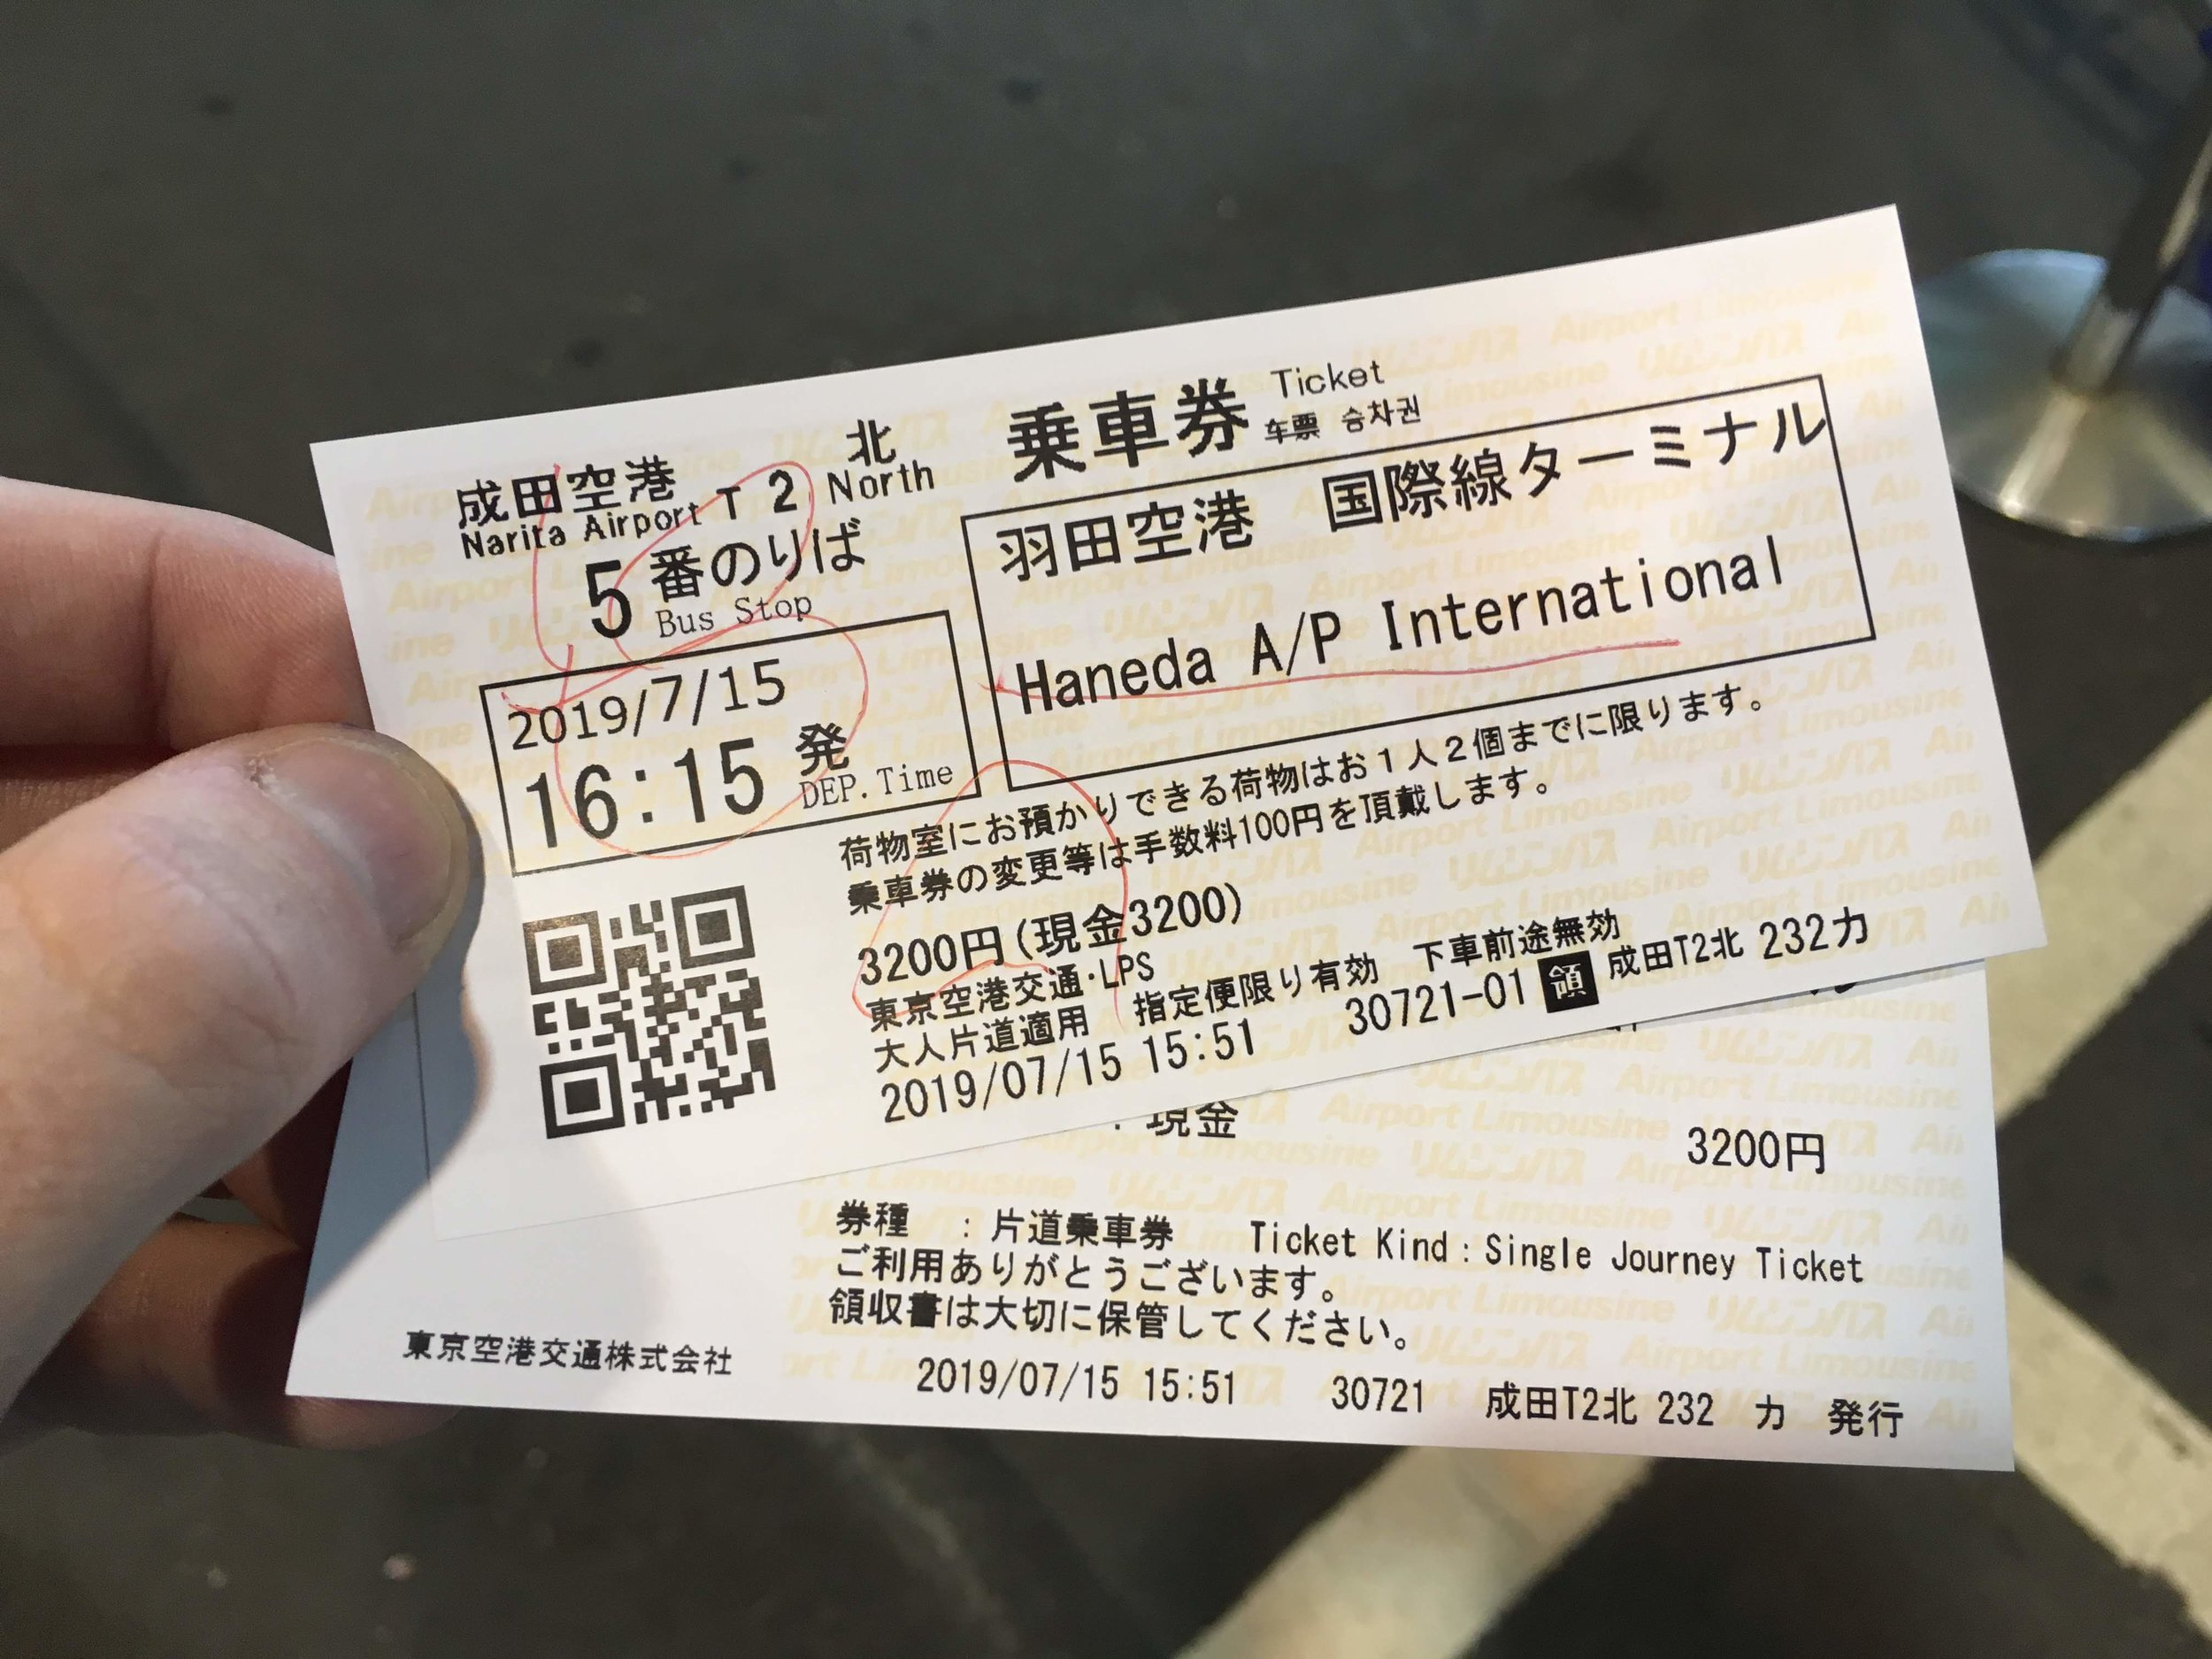 a single-journey bus ticket from Narita Airport to Hanaeda Airport in Tokyo